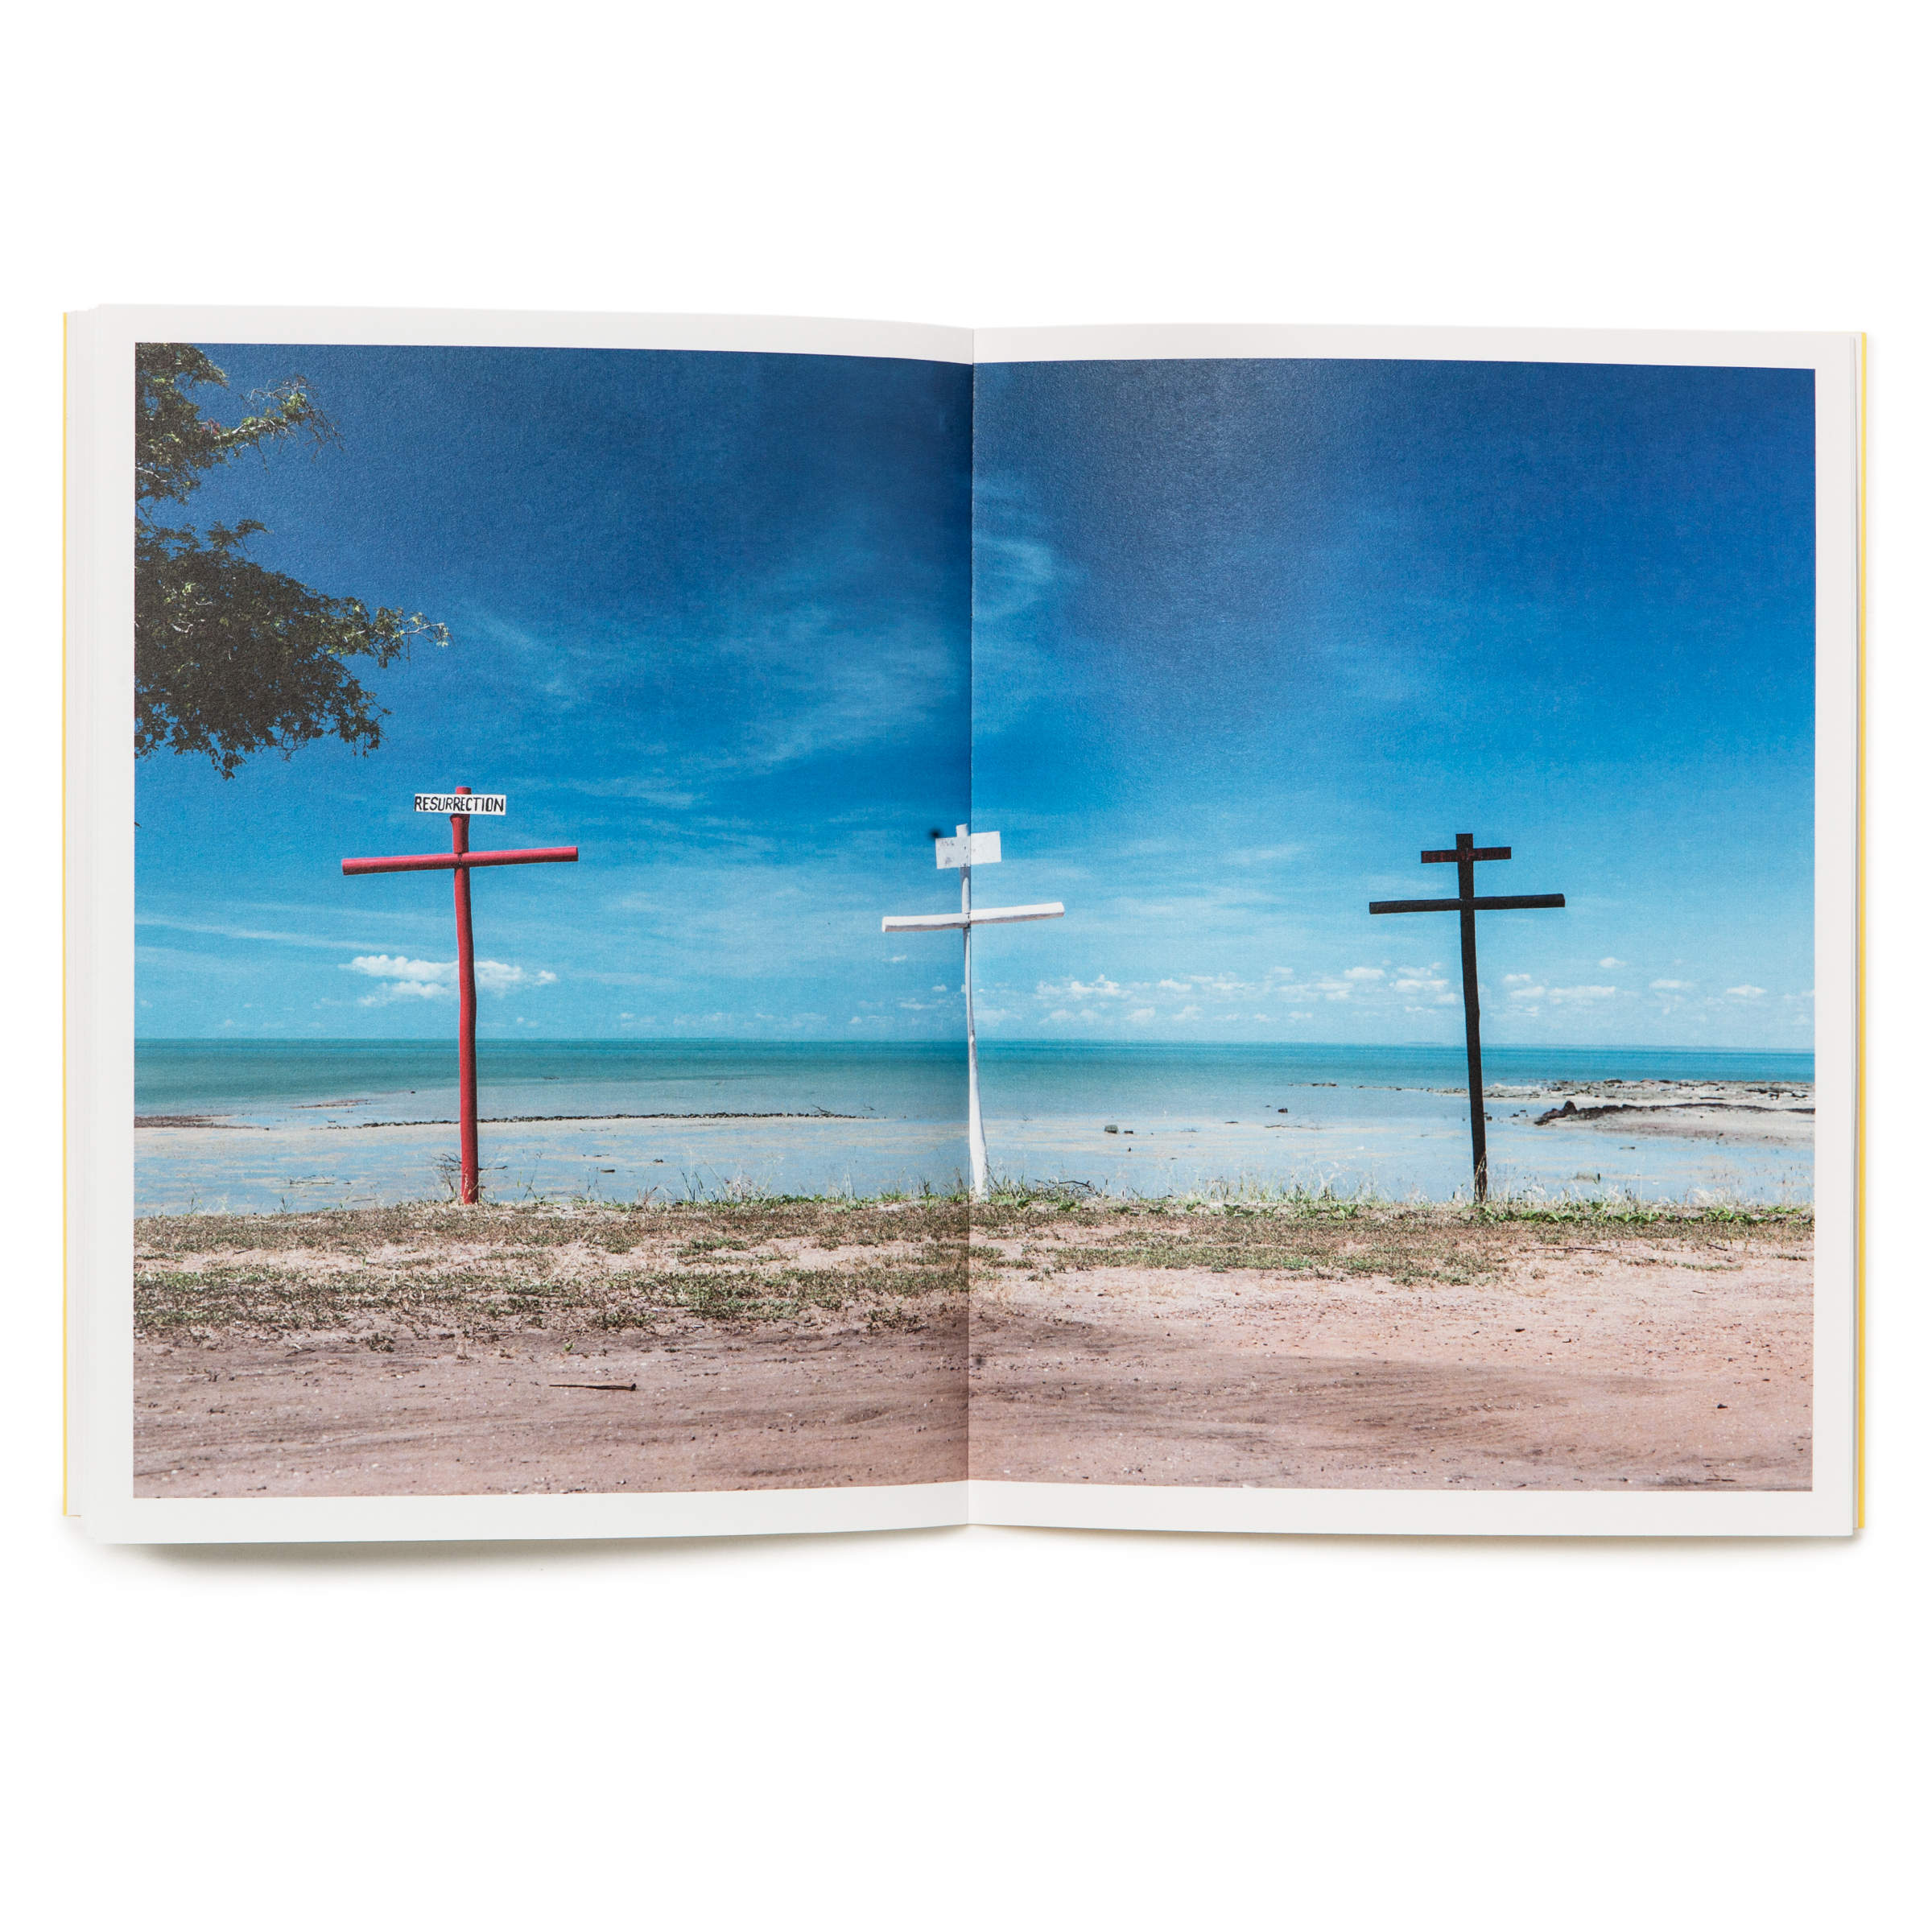 The launch of Melbourne-based photographer Tim Hillier's new book North of the South